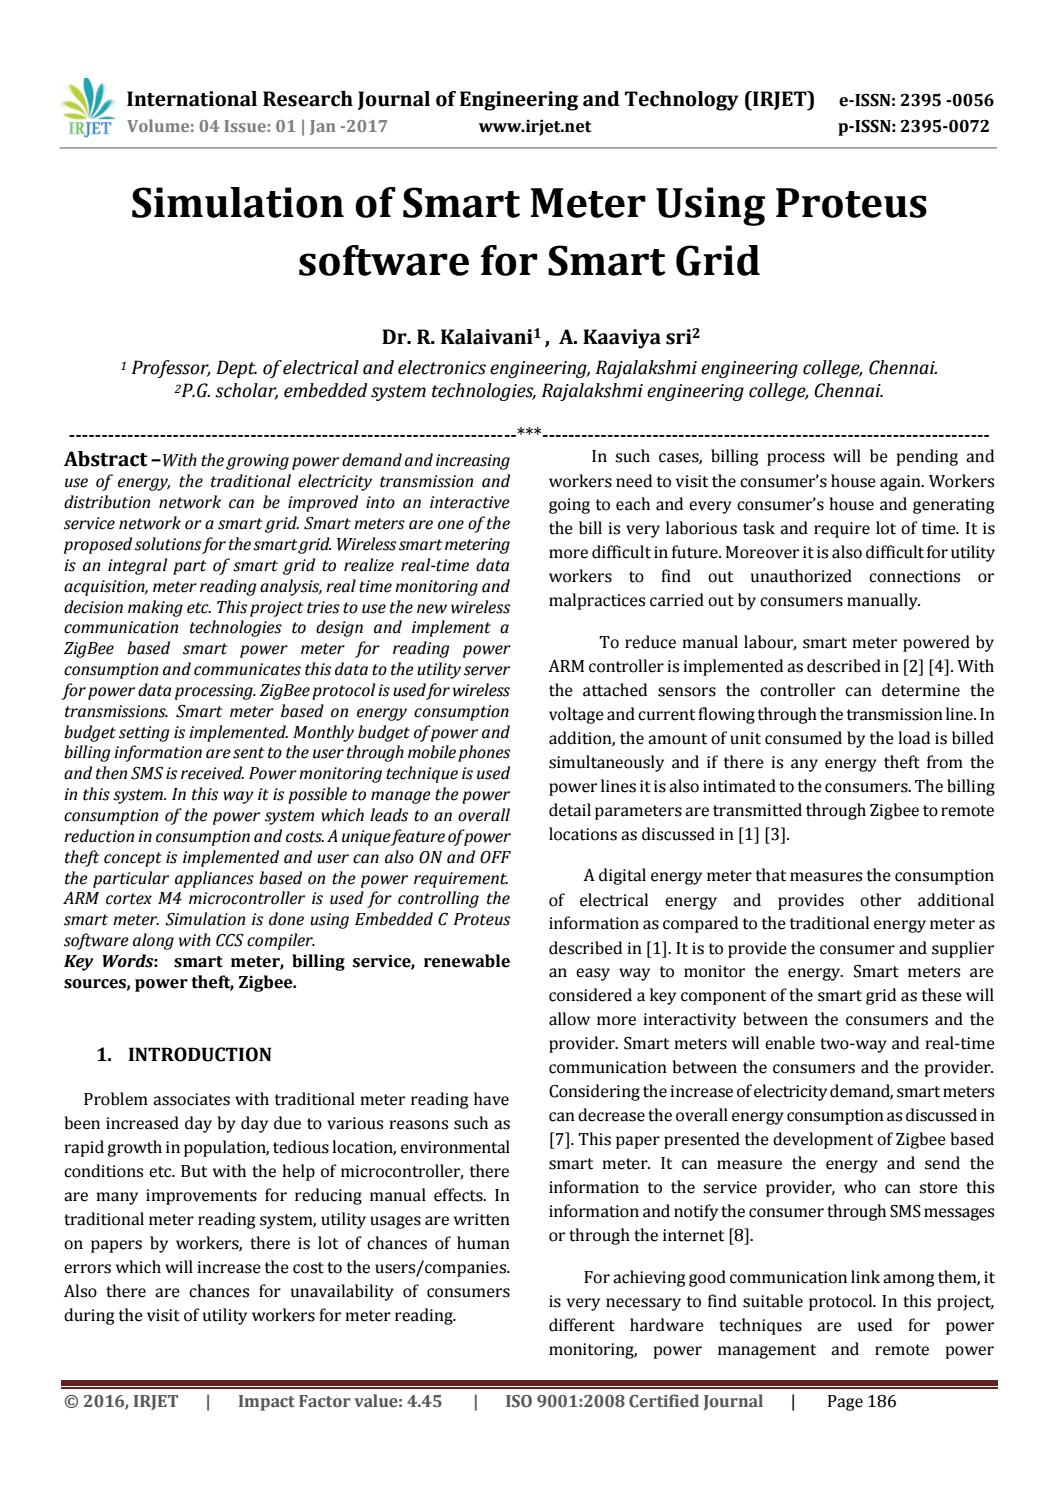 Simulation Of Smart Meter Using Proteus Software For Grid By The Complete Electronics Design System Irjet Journal Issuu